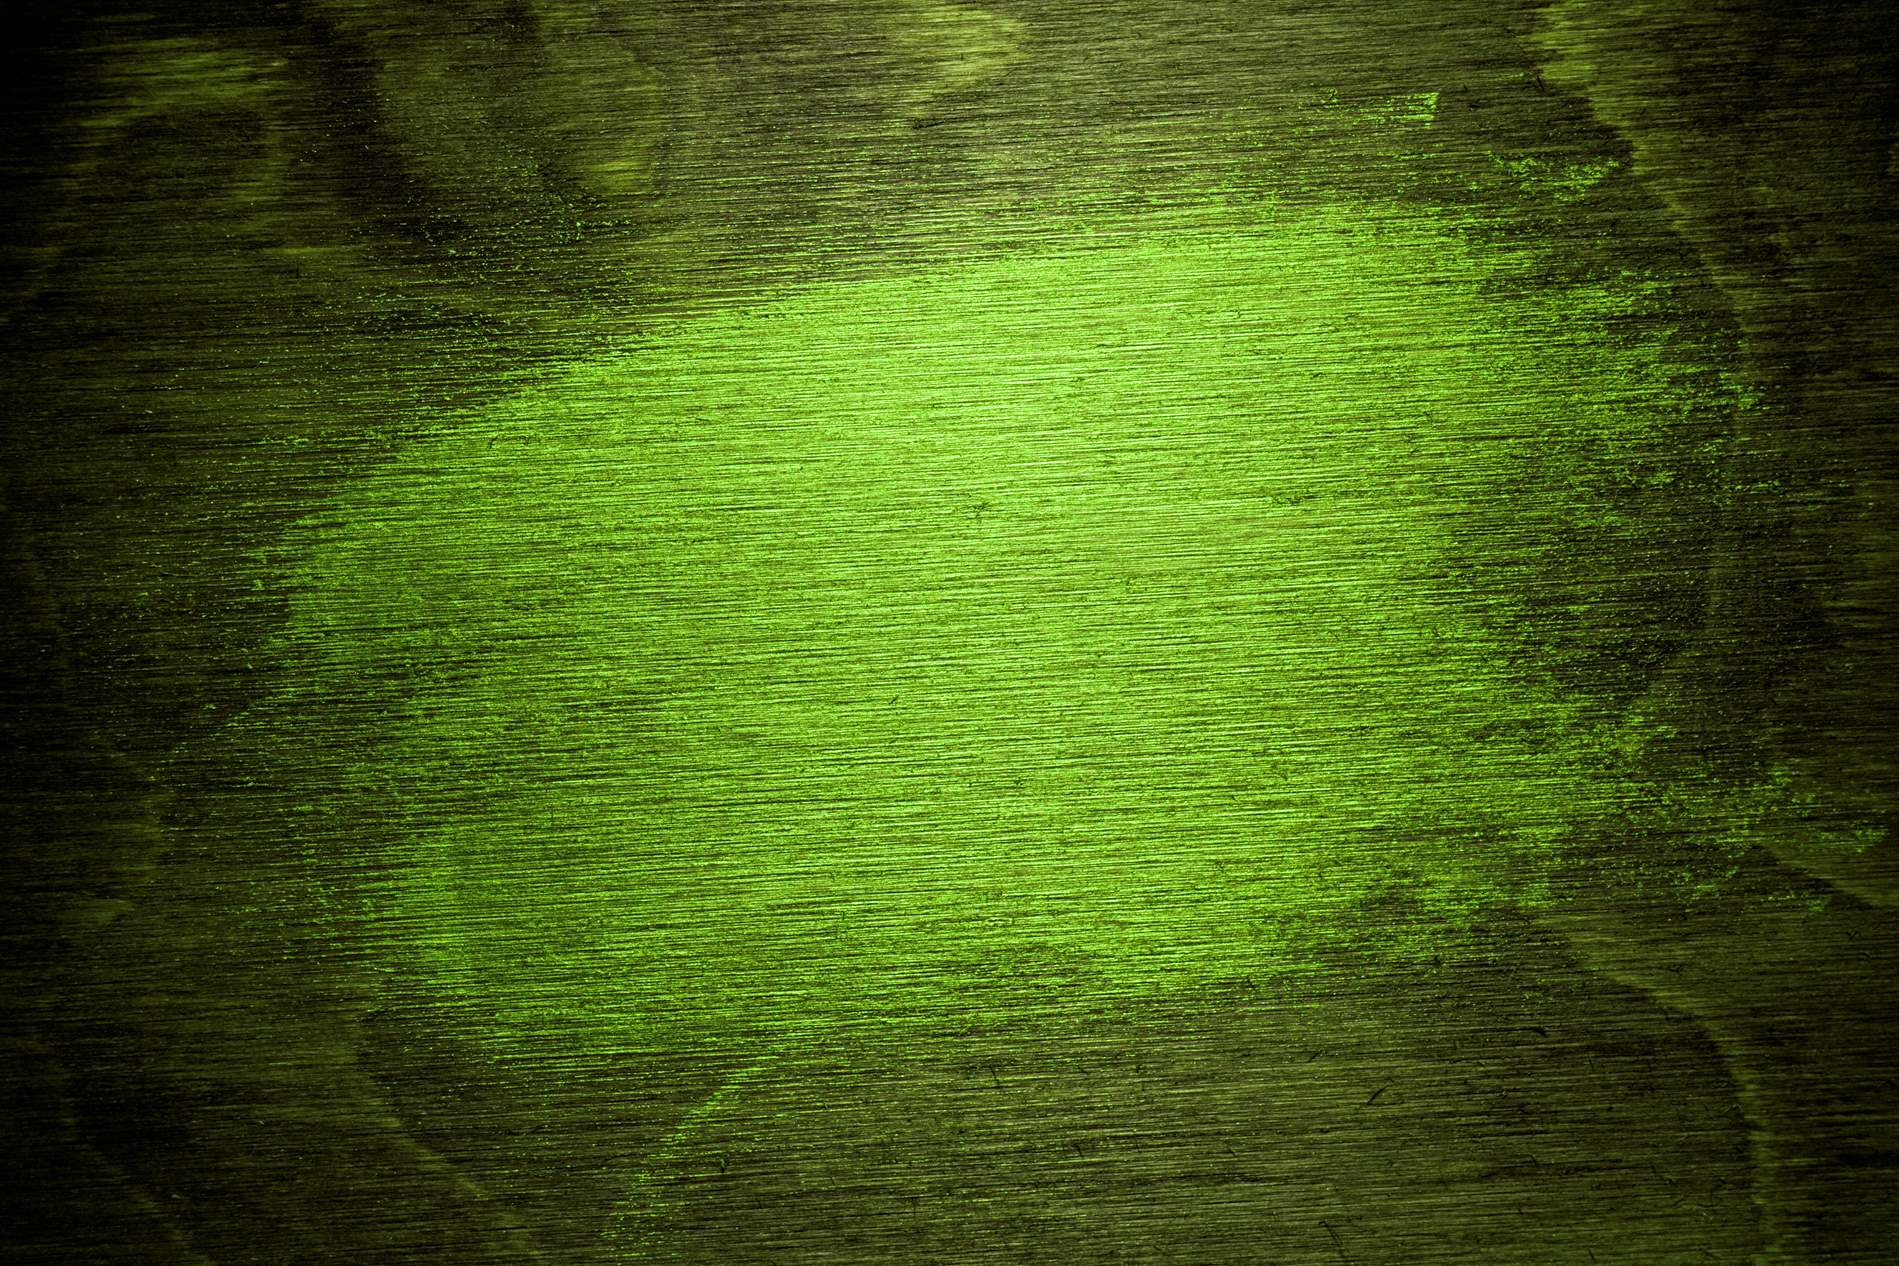 Dark Green Grunge Background With Center Light - PhotoHDX